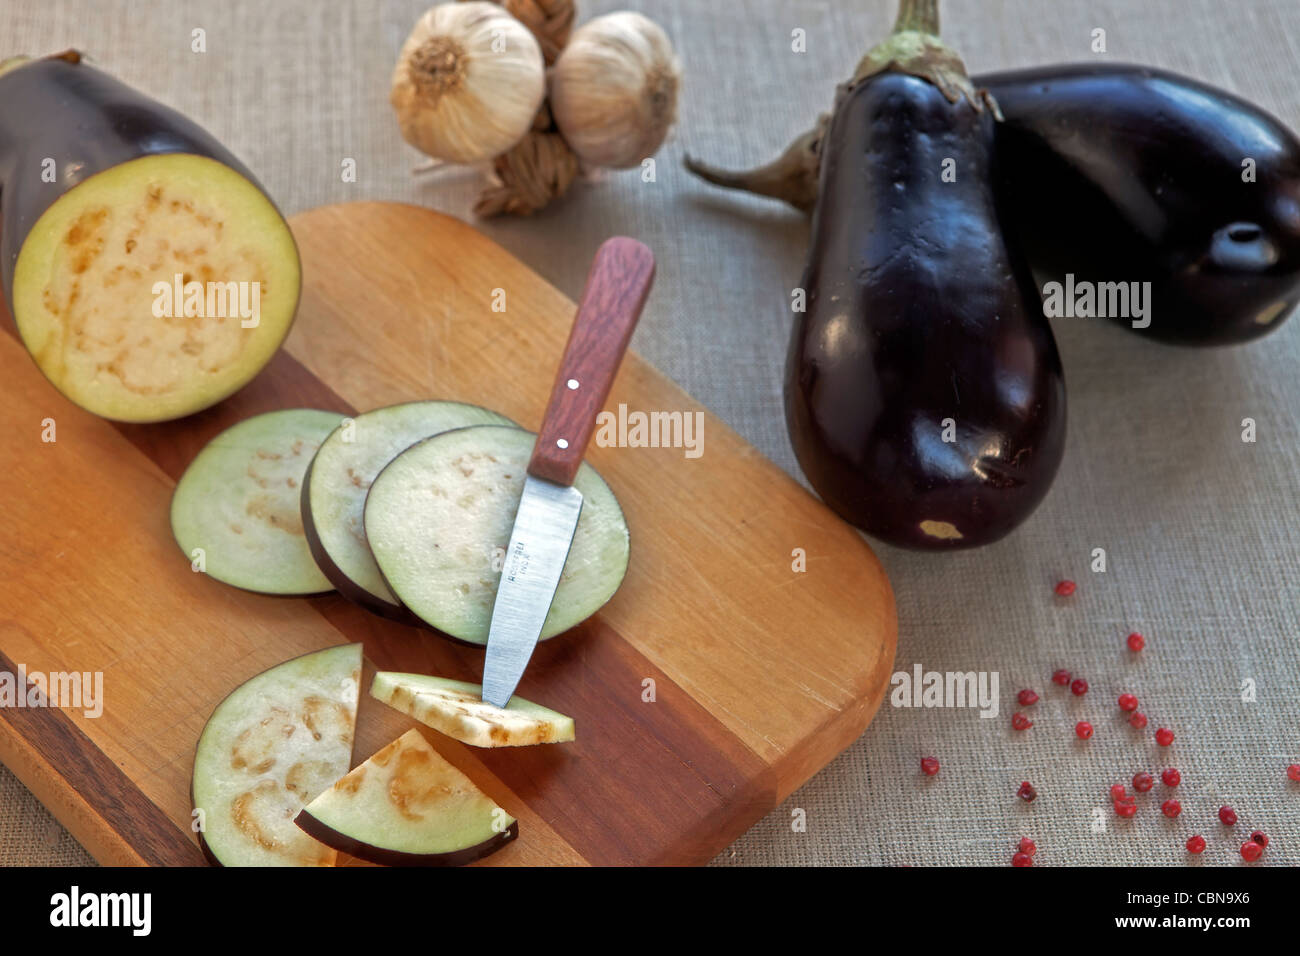 Eggplant, whole and cut, with knife on a wooden board  - Stock Image